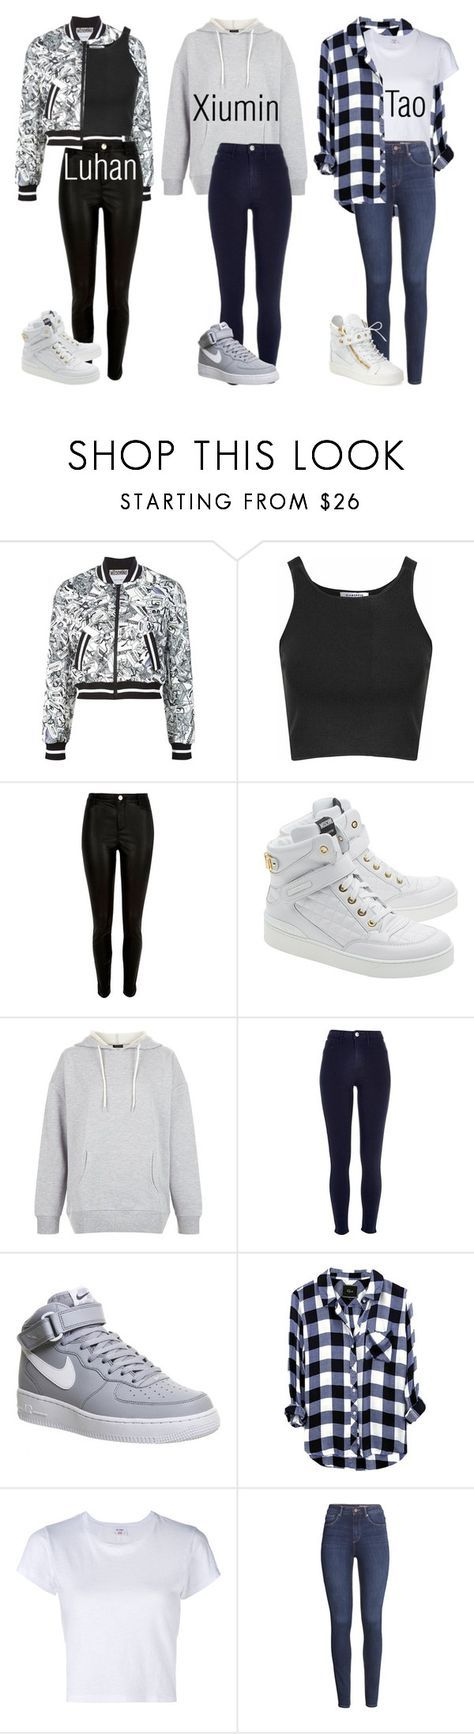 """Exo Inspired Outfits Pt.4"" by fangirlkaly8102 ❤ liked on Polyvore featuring Moschino, Glamorous, River Island, New Look, NIKE, RE/DONE, H&M, Giuseppe Zanotti, kpop and EXO"